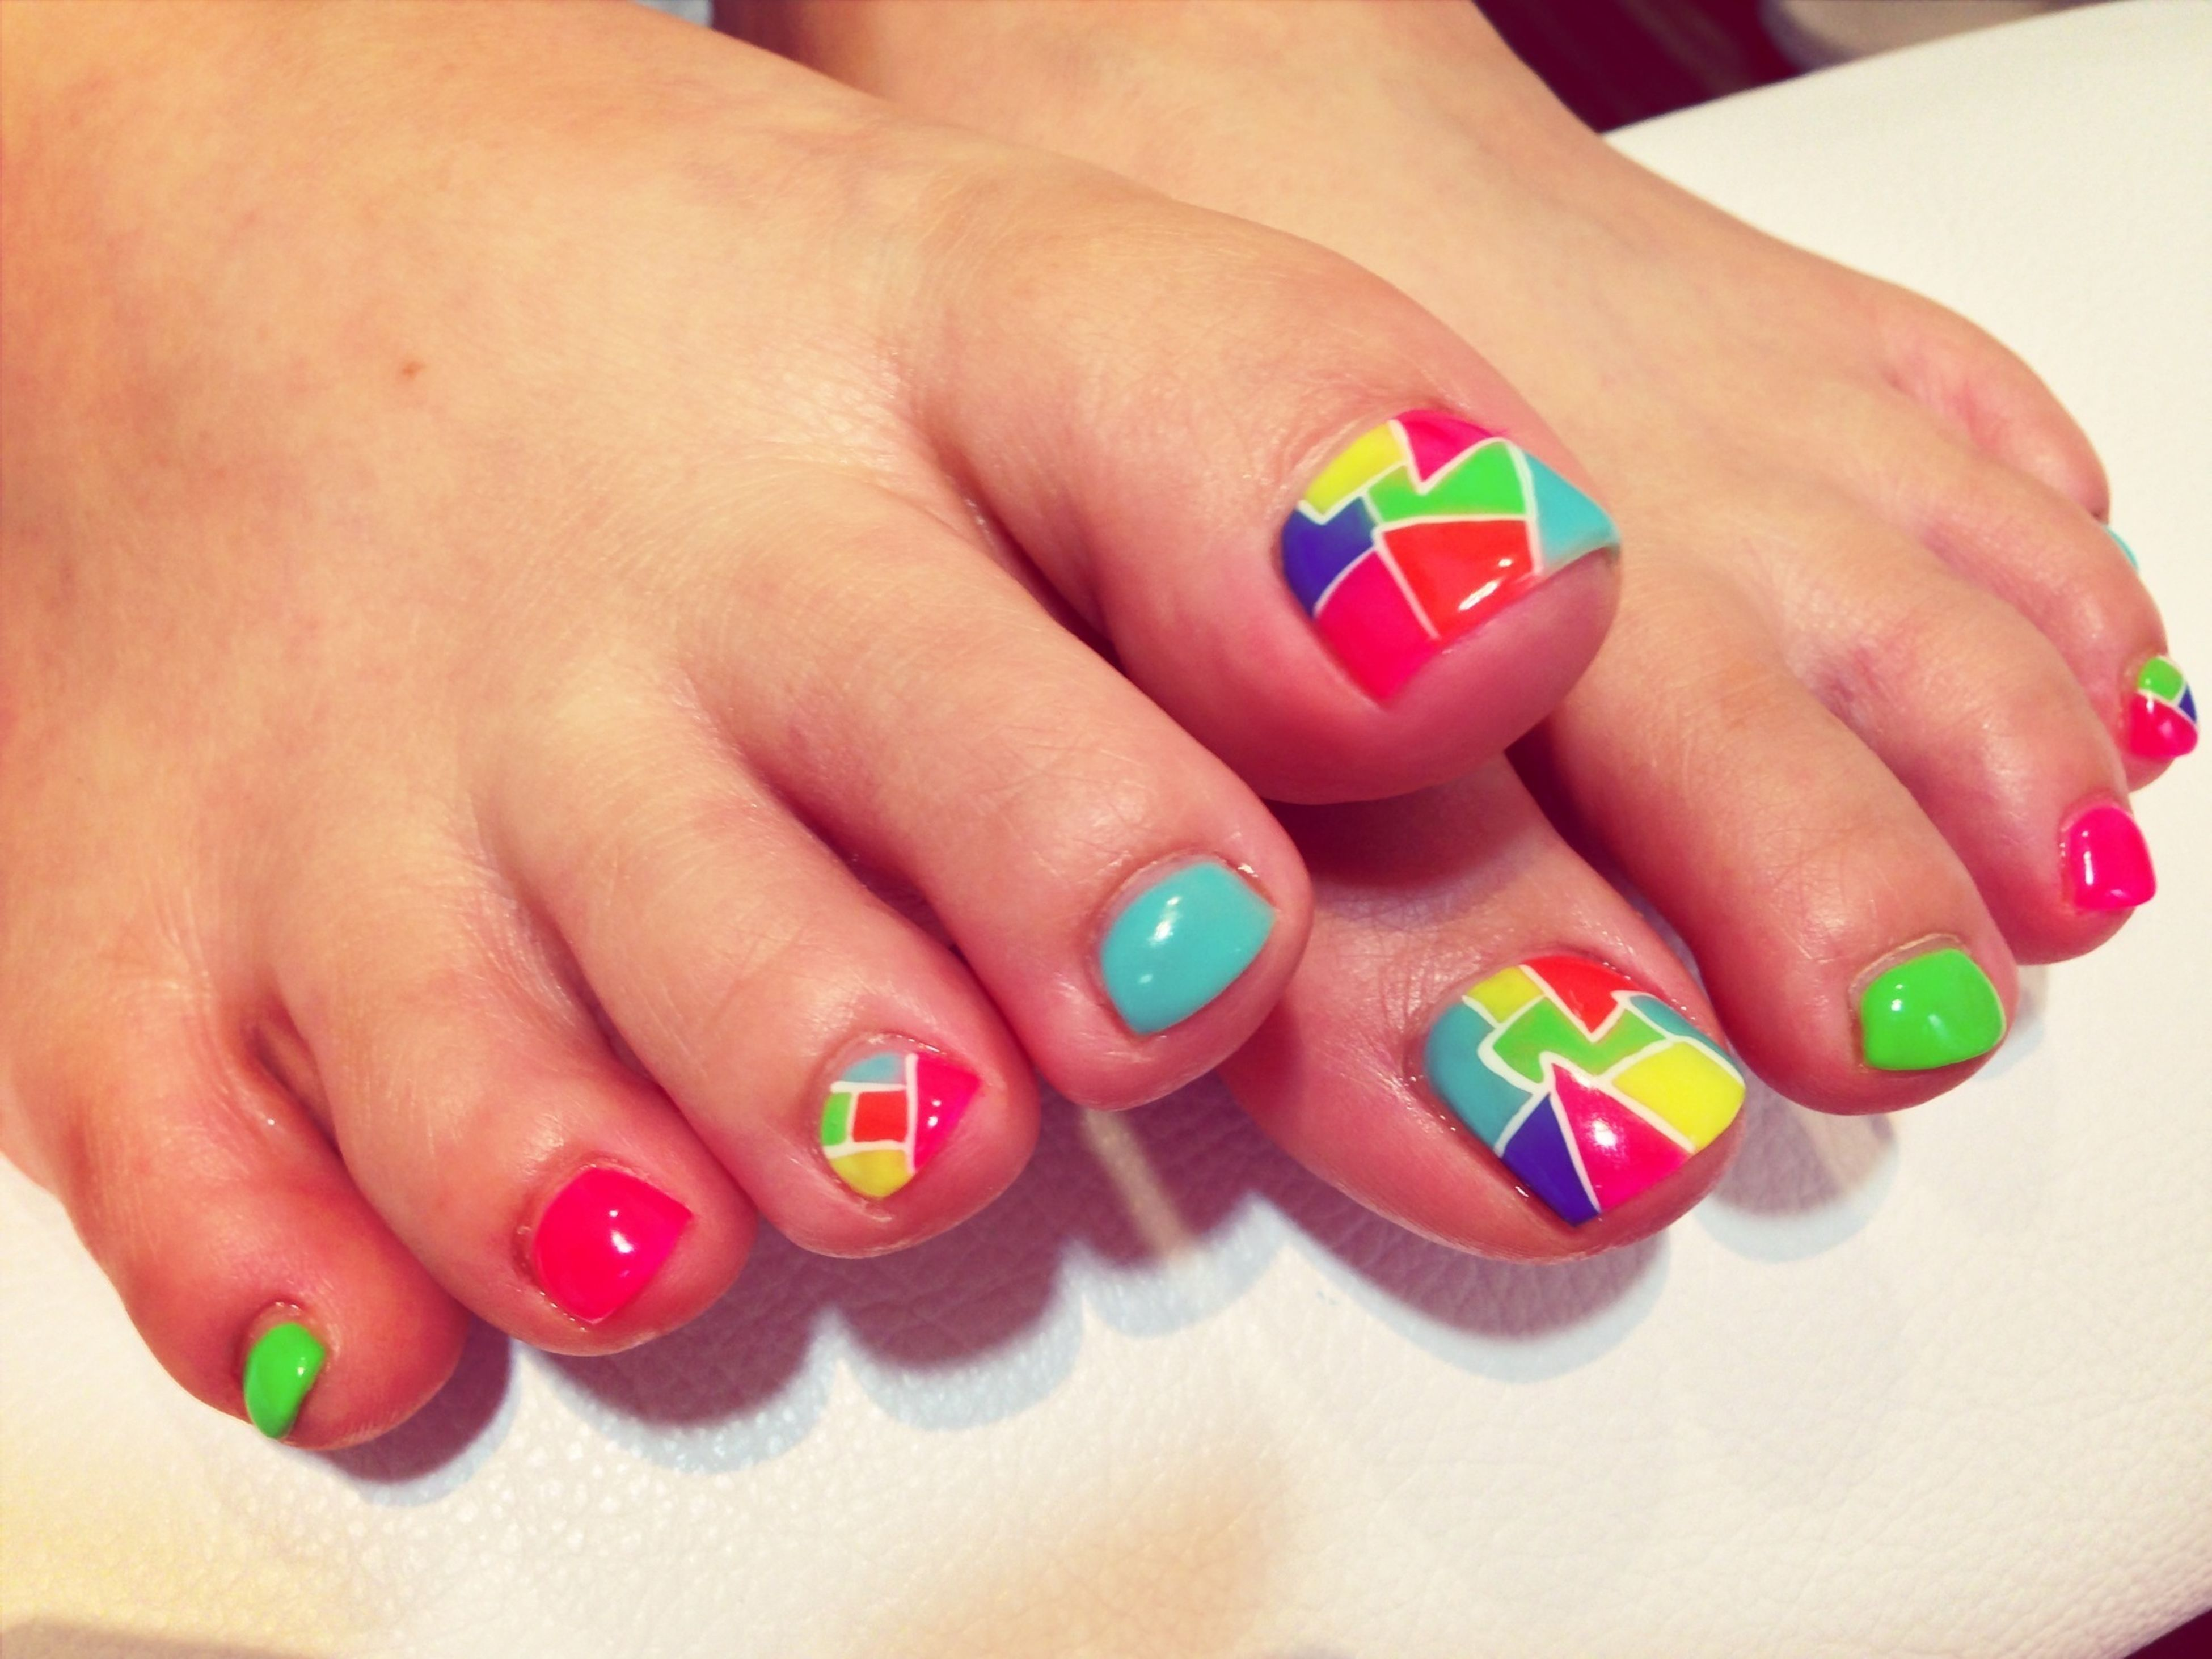 person, indoors, holding, part of, human finger, creativity, close-up, lifestyles, childhood, multi colored, high angle view, art, nail polish, leisure activity, cropped, art and craft